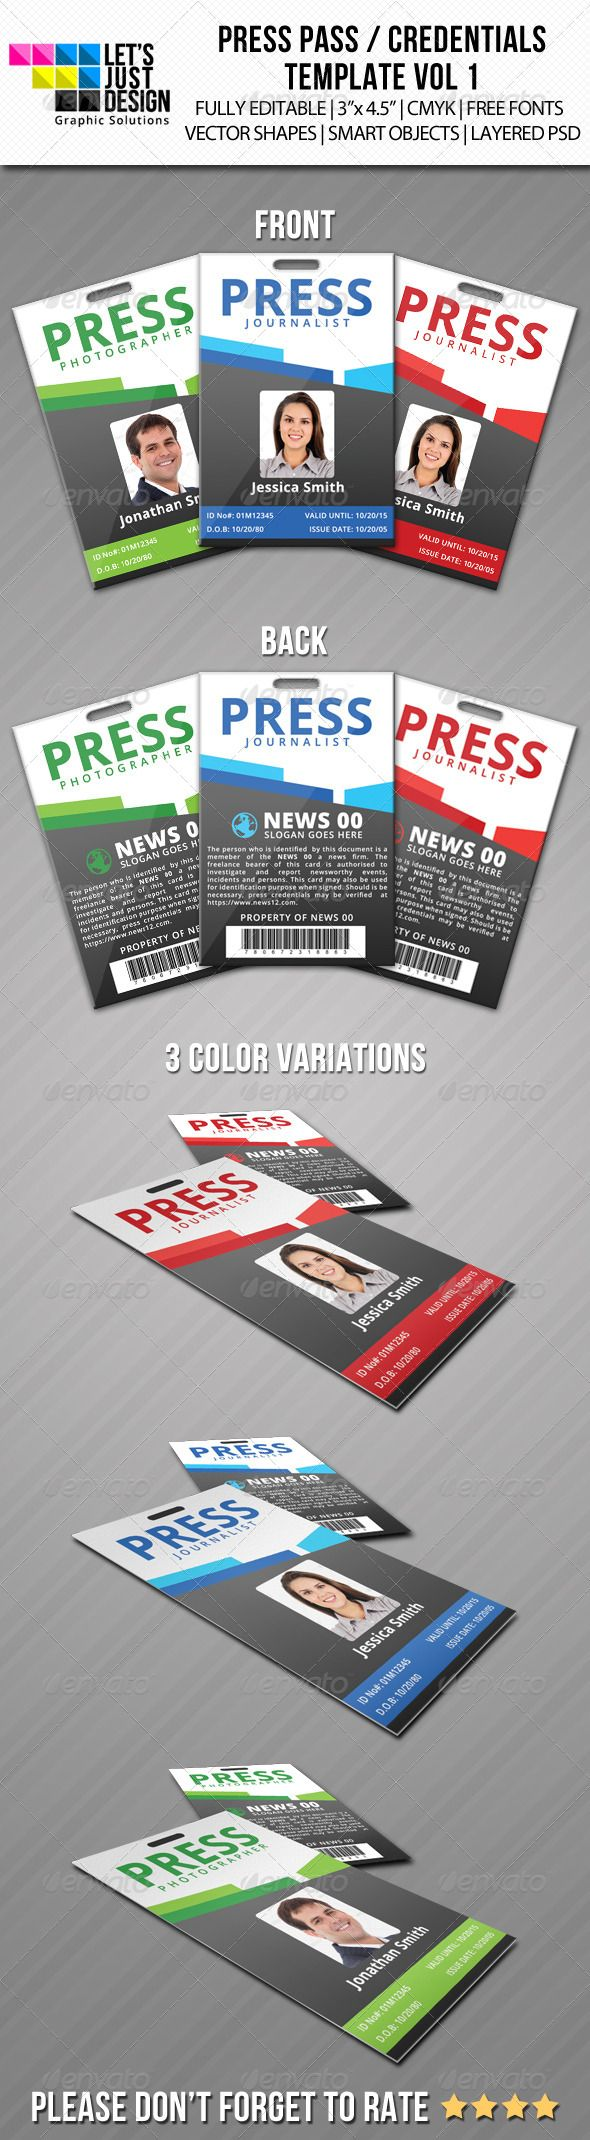 Press Pass / Credentials Template Vol 1 — Photoshop PSD #media pass #credentials • Available here → https://graphicriver.net/item/press-pass-credentials-template-vol-1/5989512?ref=pxcr